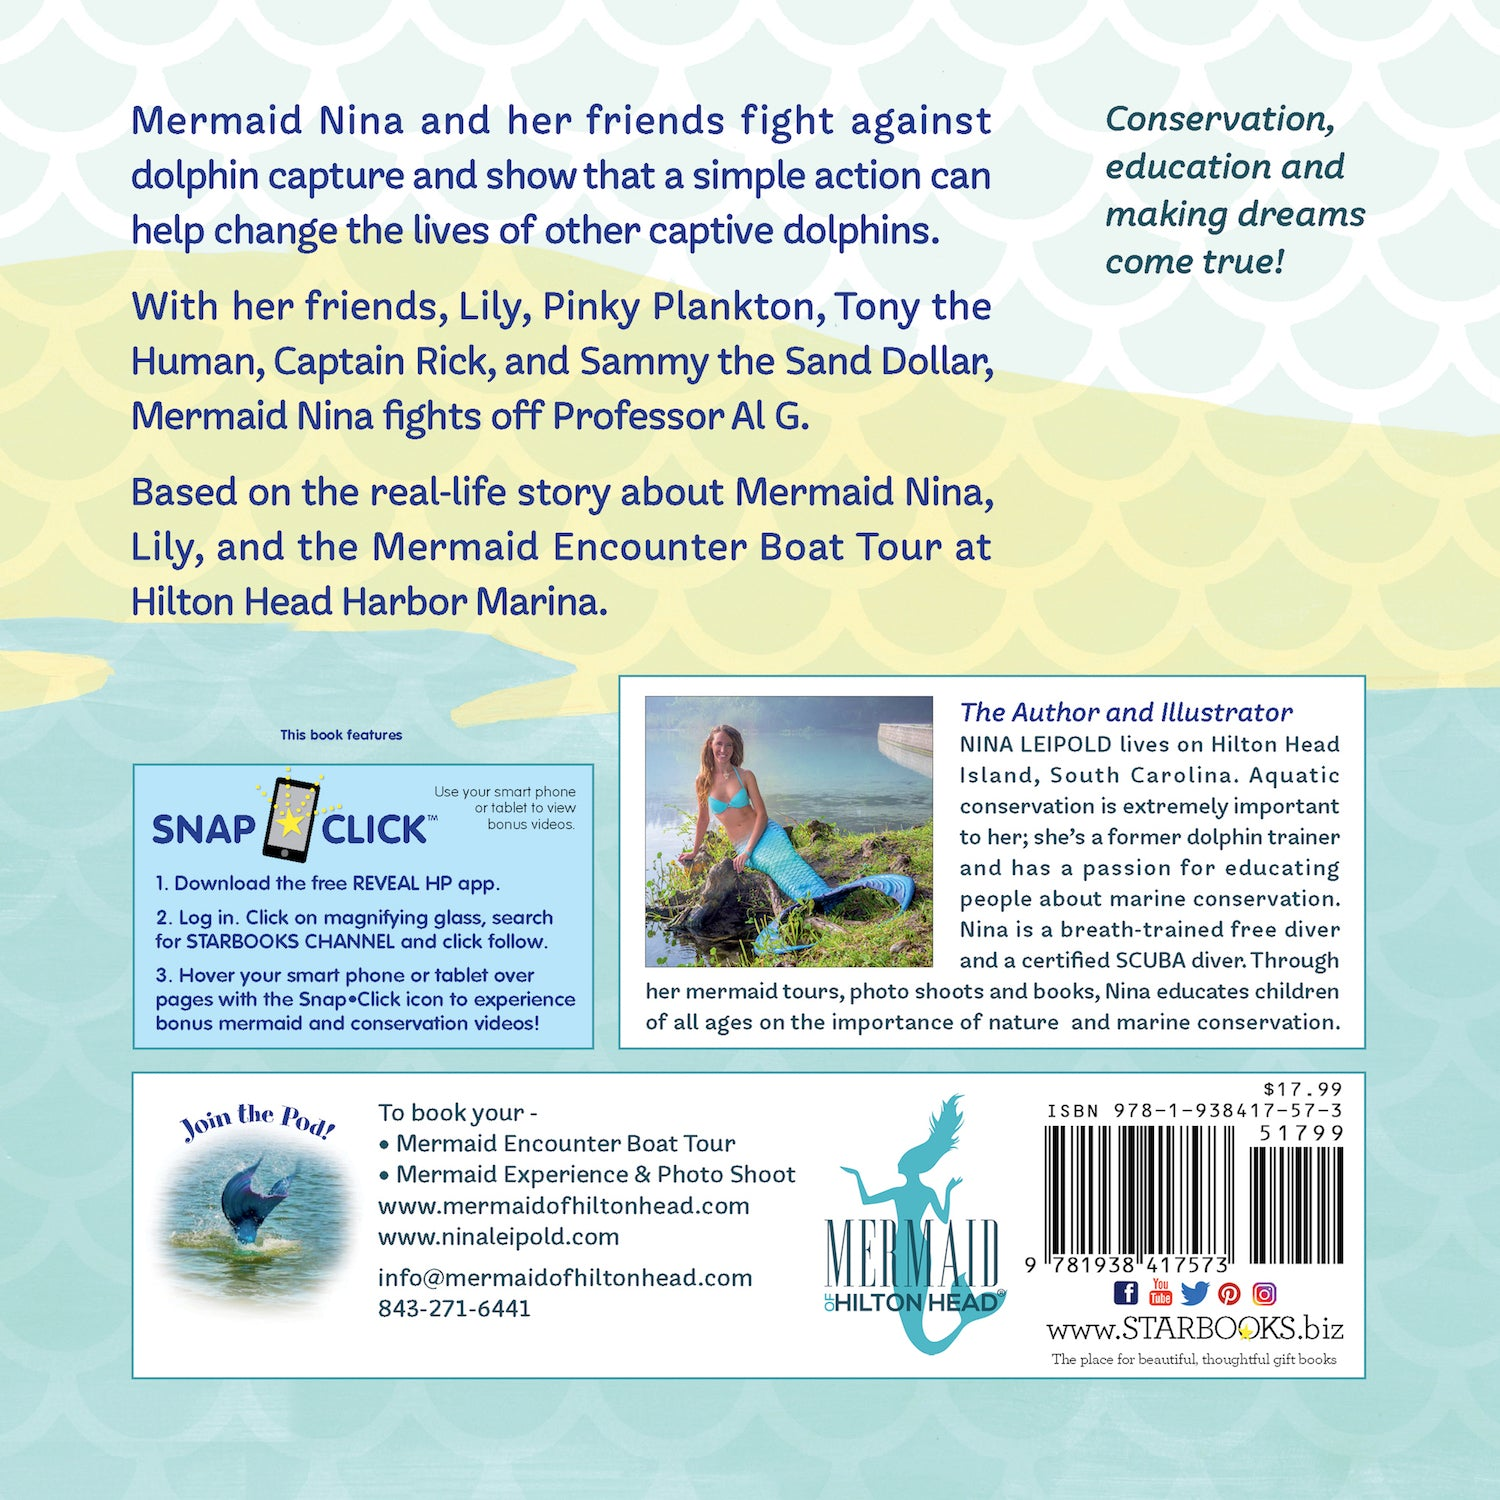 Cover: The Mermaid's Friends by Nina Leipold with Augmented Reality Starbooks